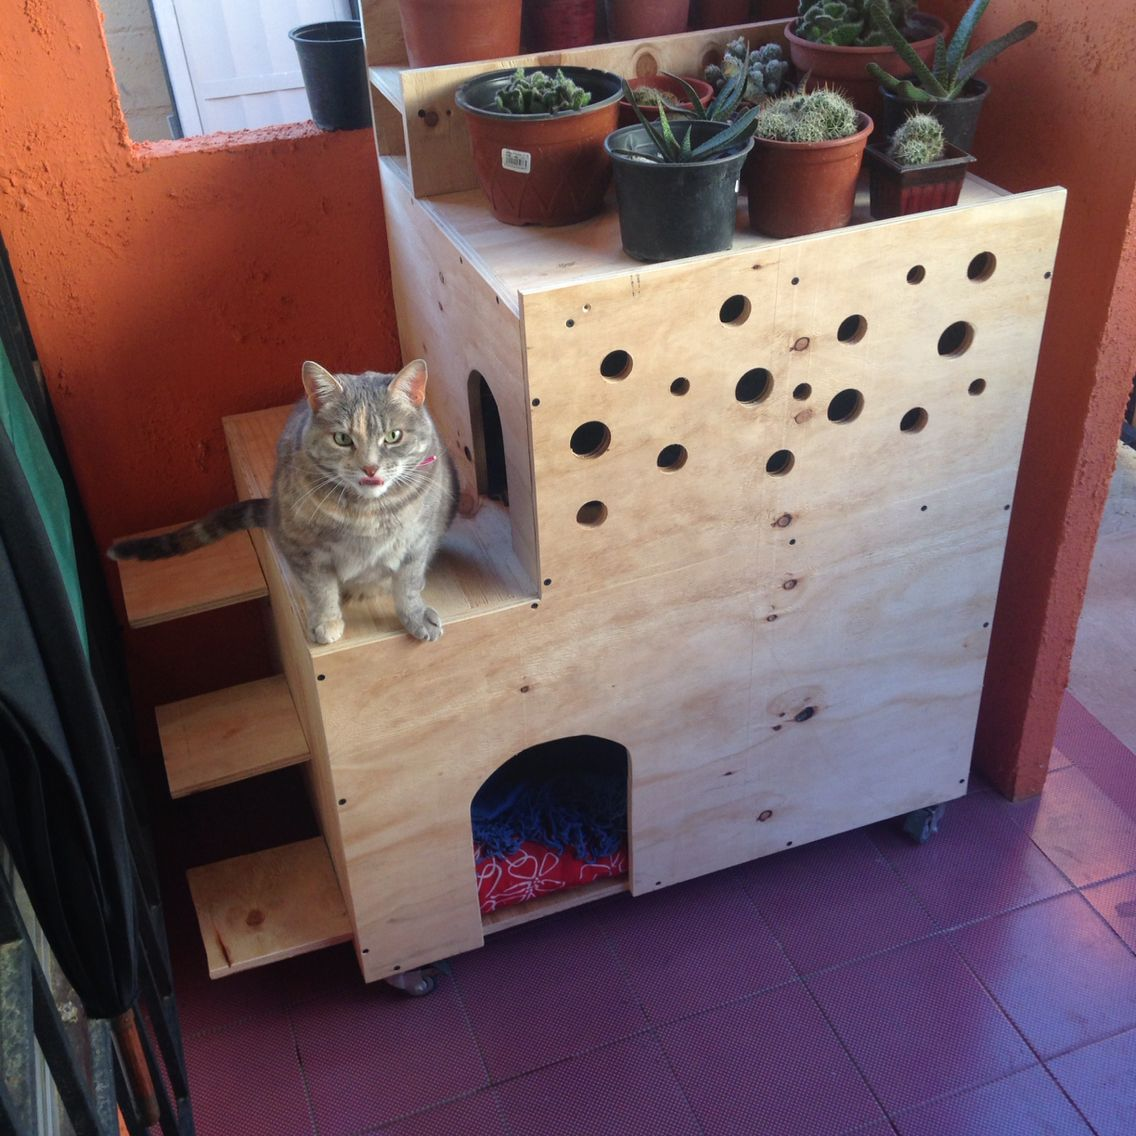 The House of my litle pet